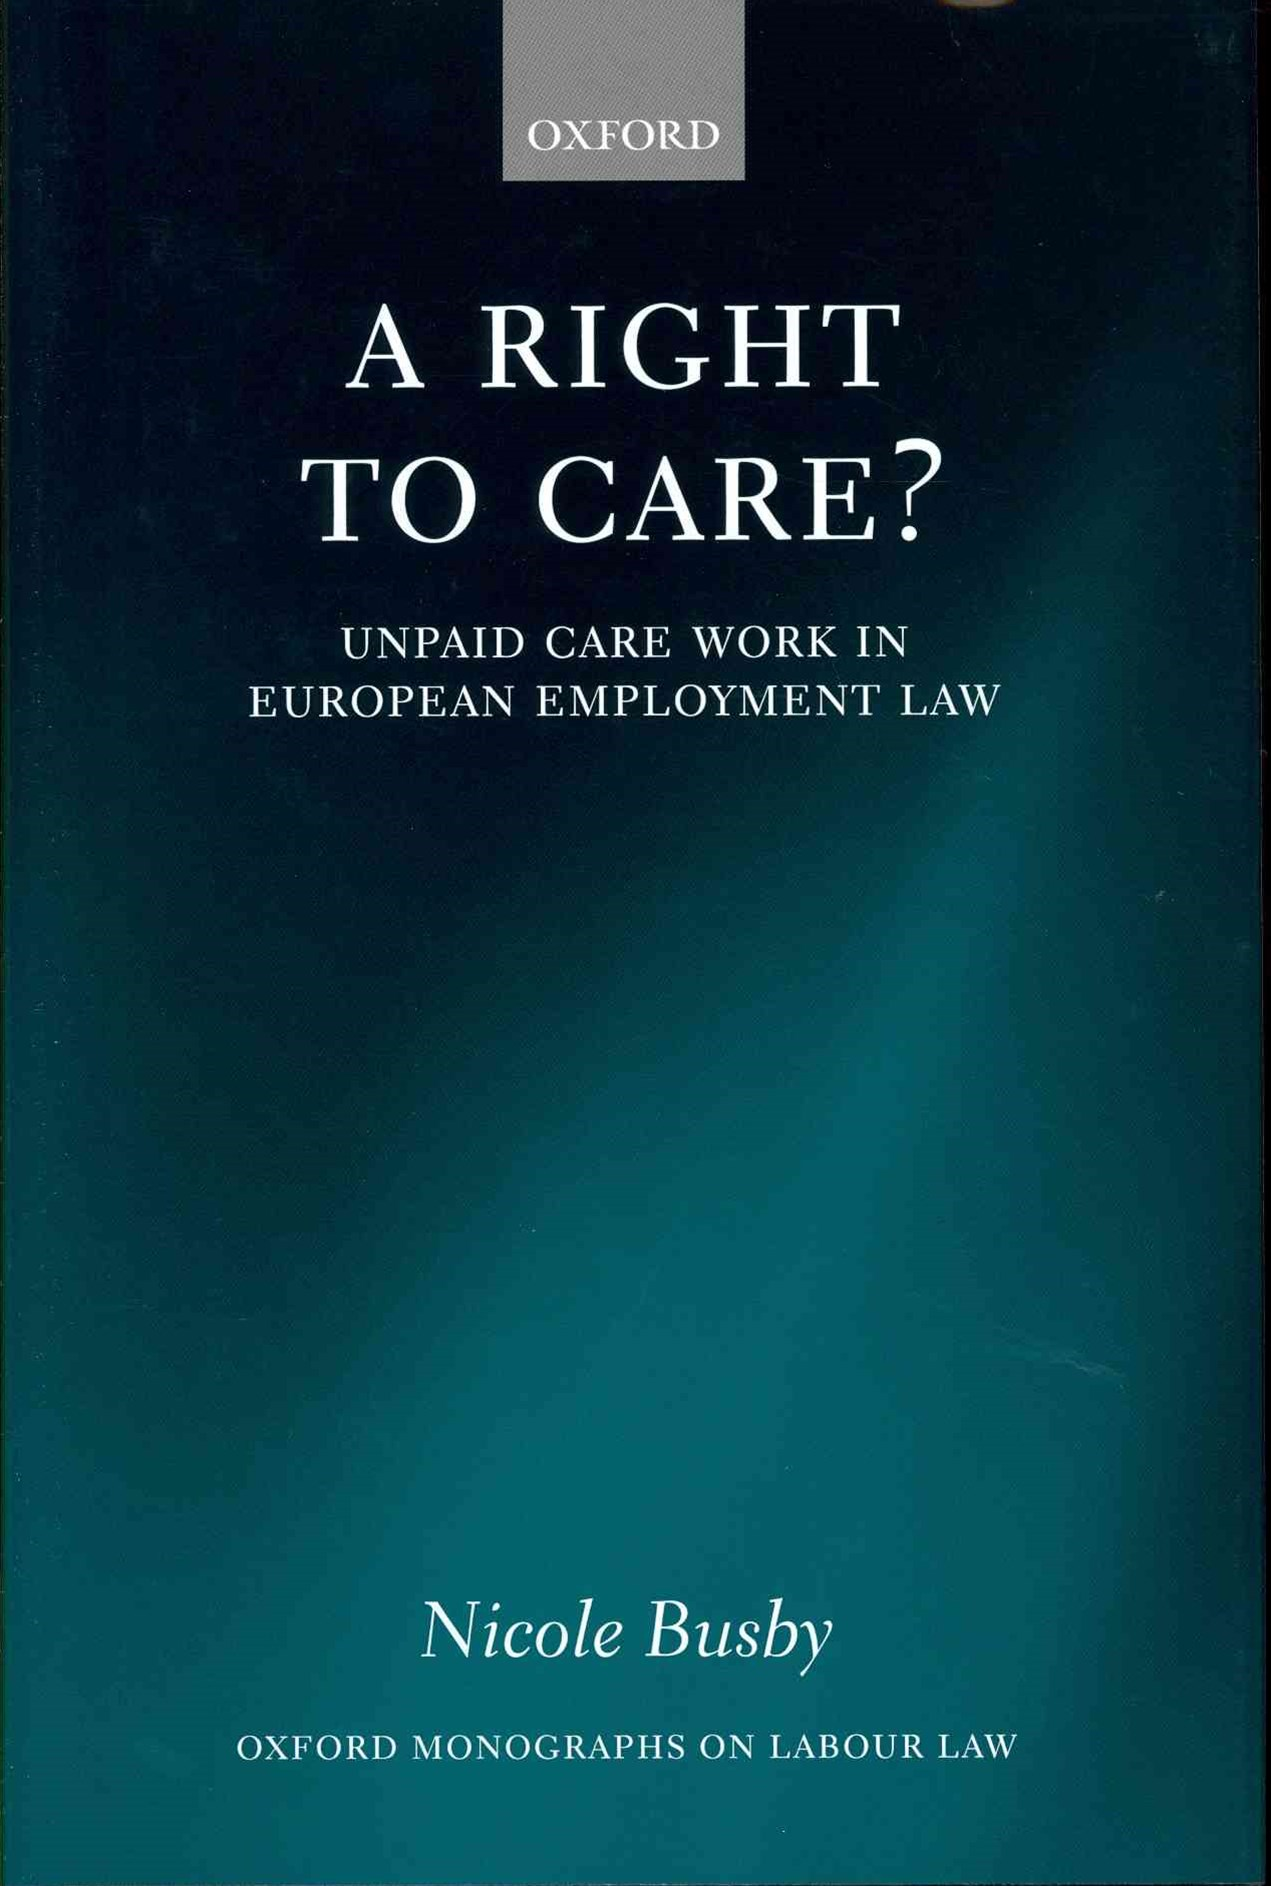 A Right to Care?